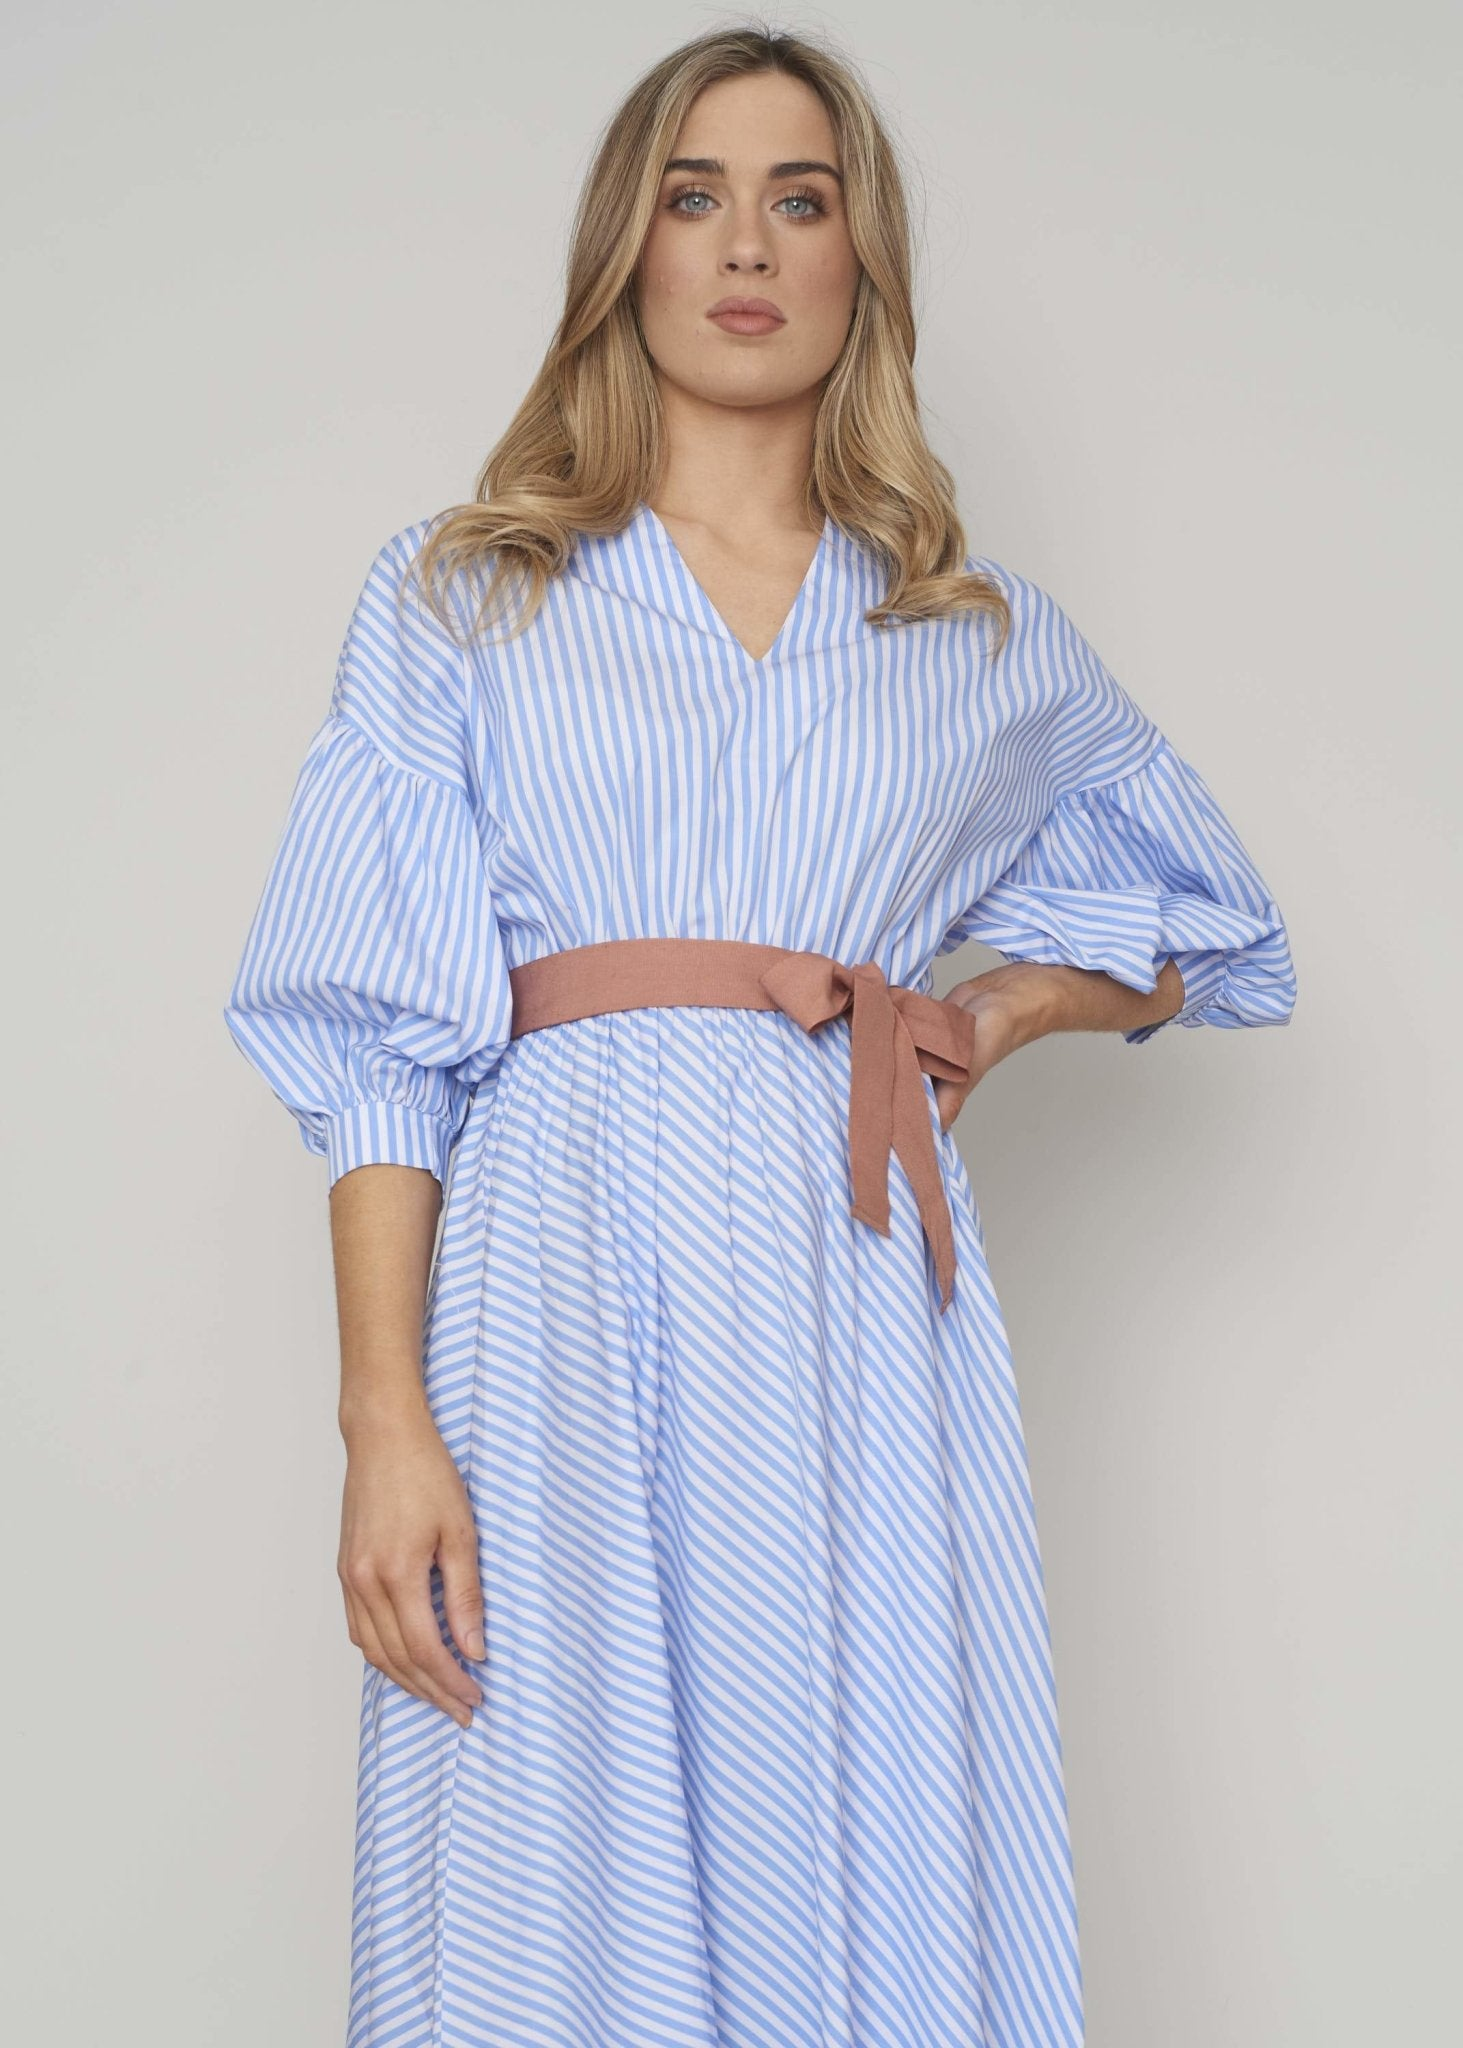 Heidi Puff Sleeve Dress In Blue Stripe - The Walk in Wardrobe